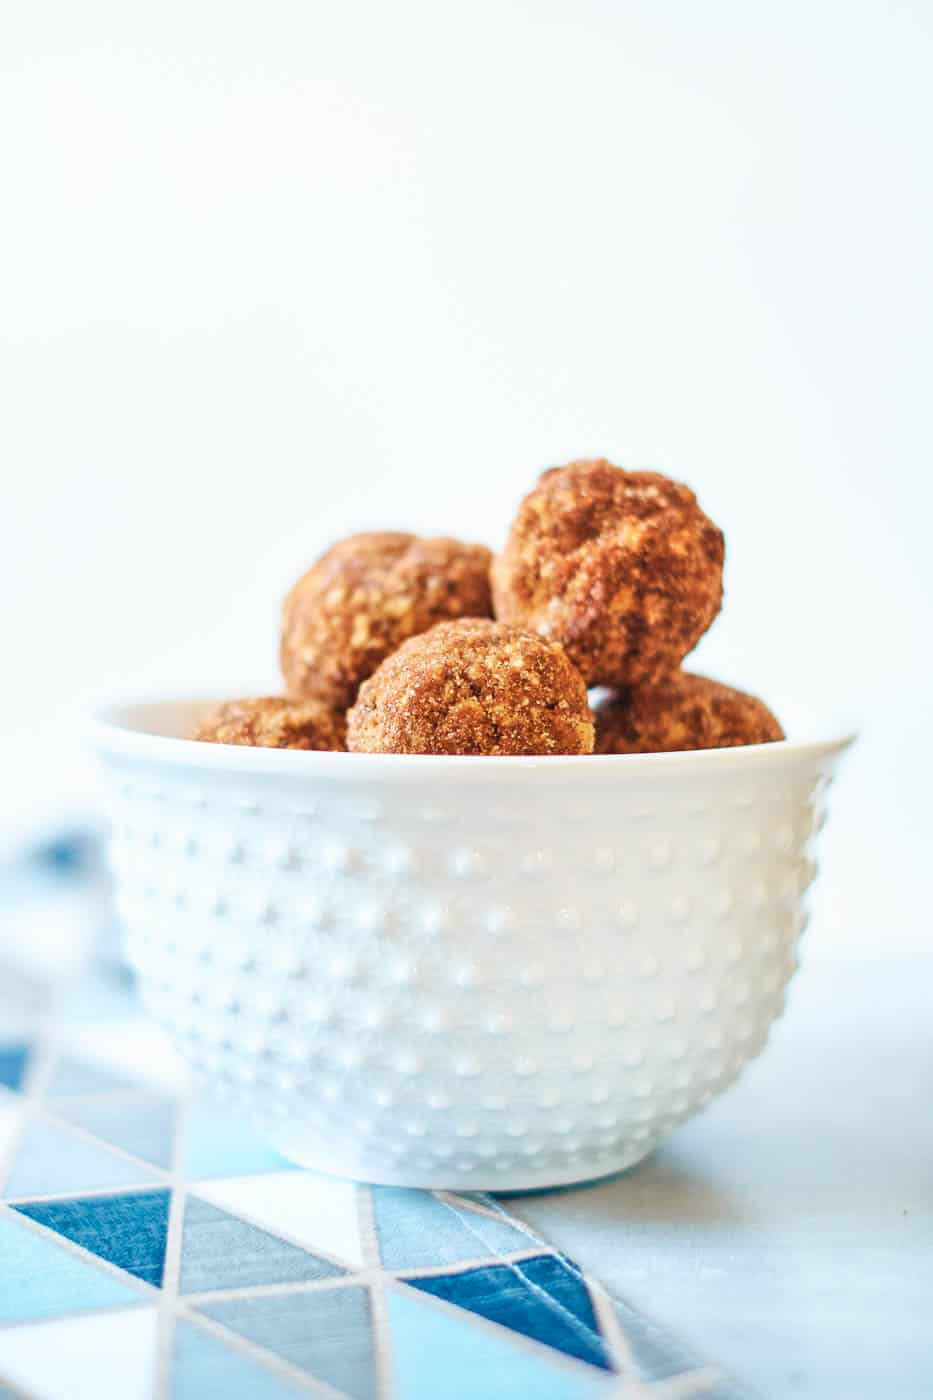 vegan chocolate truffles in a white bowl with blue napkin